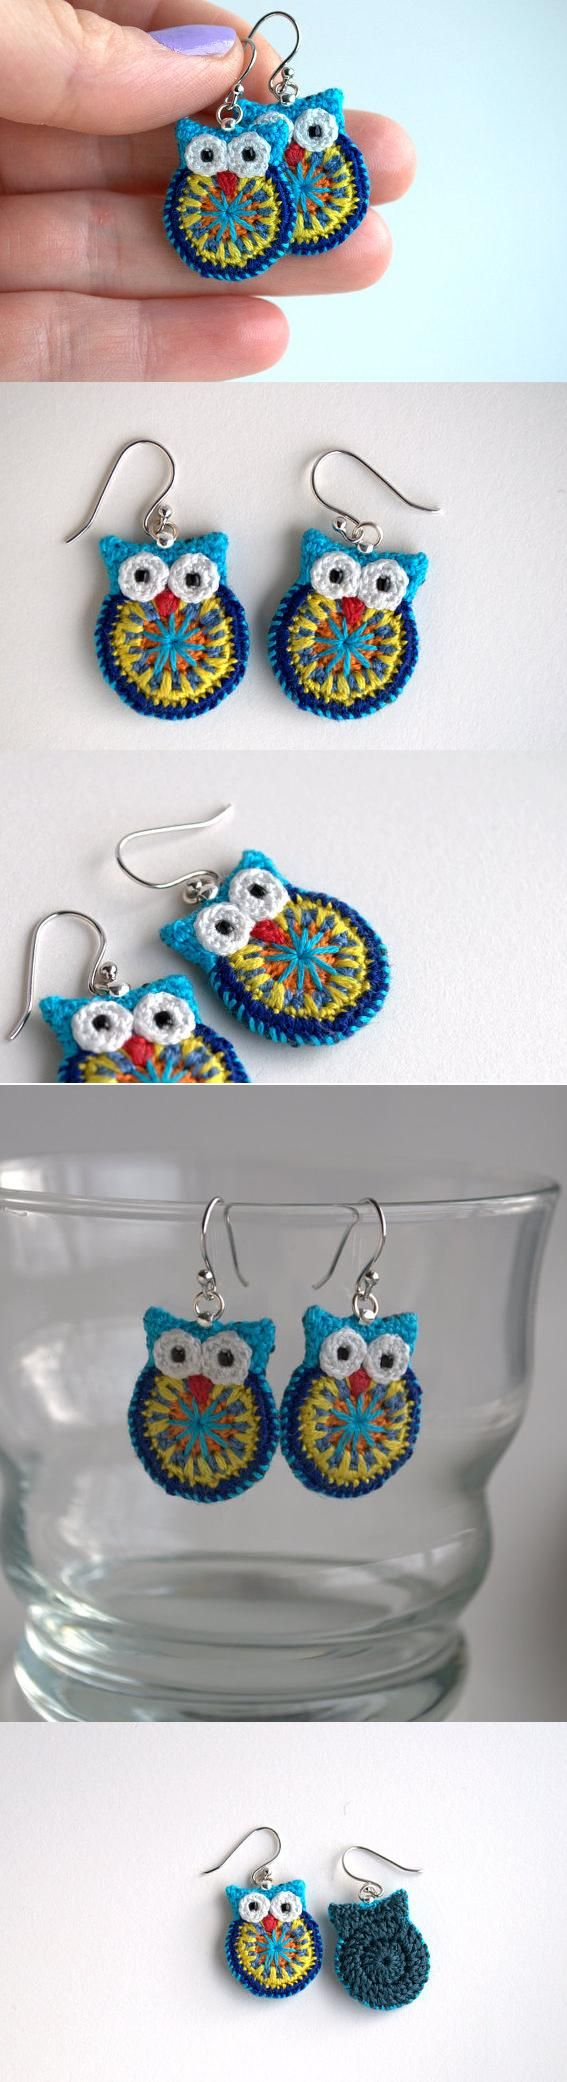 Owl earrings, crochet owl earrings. More